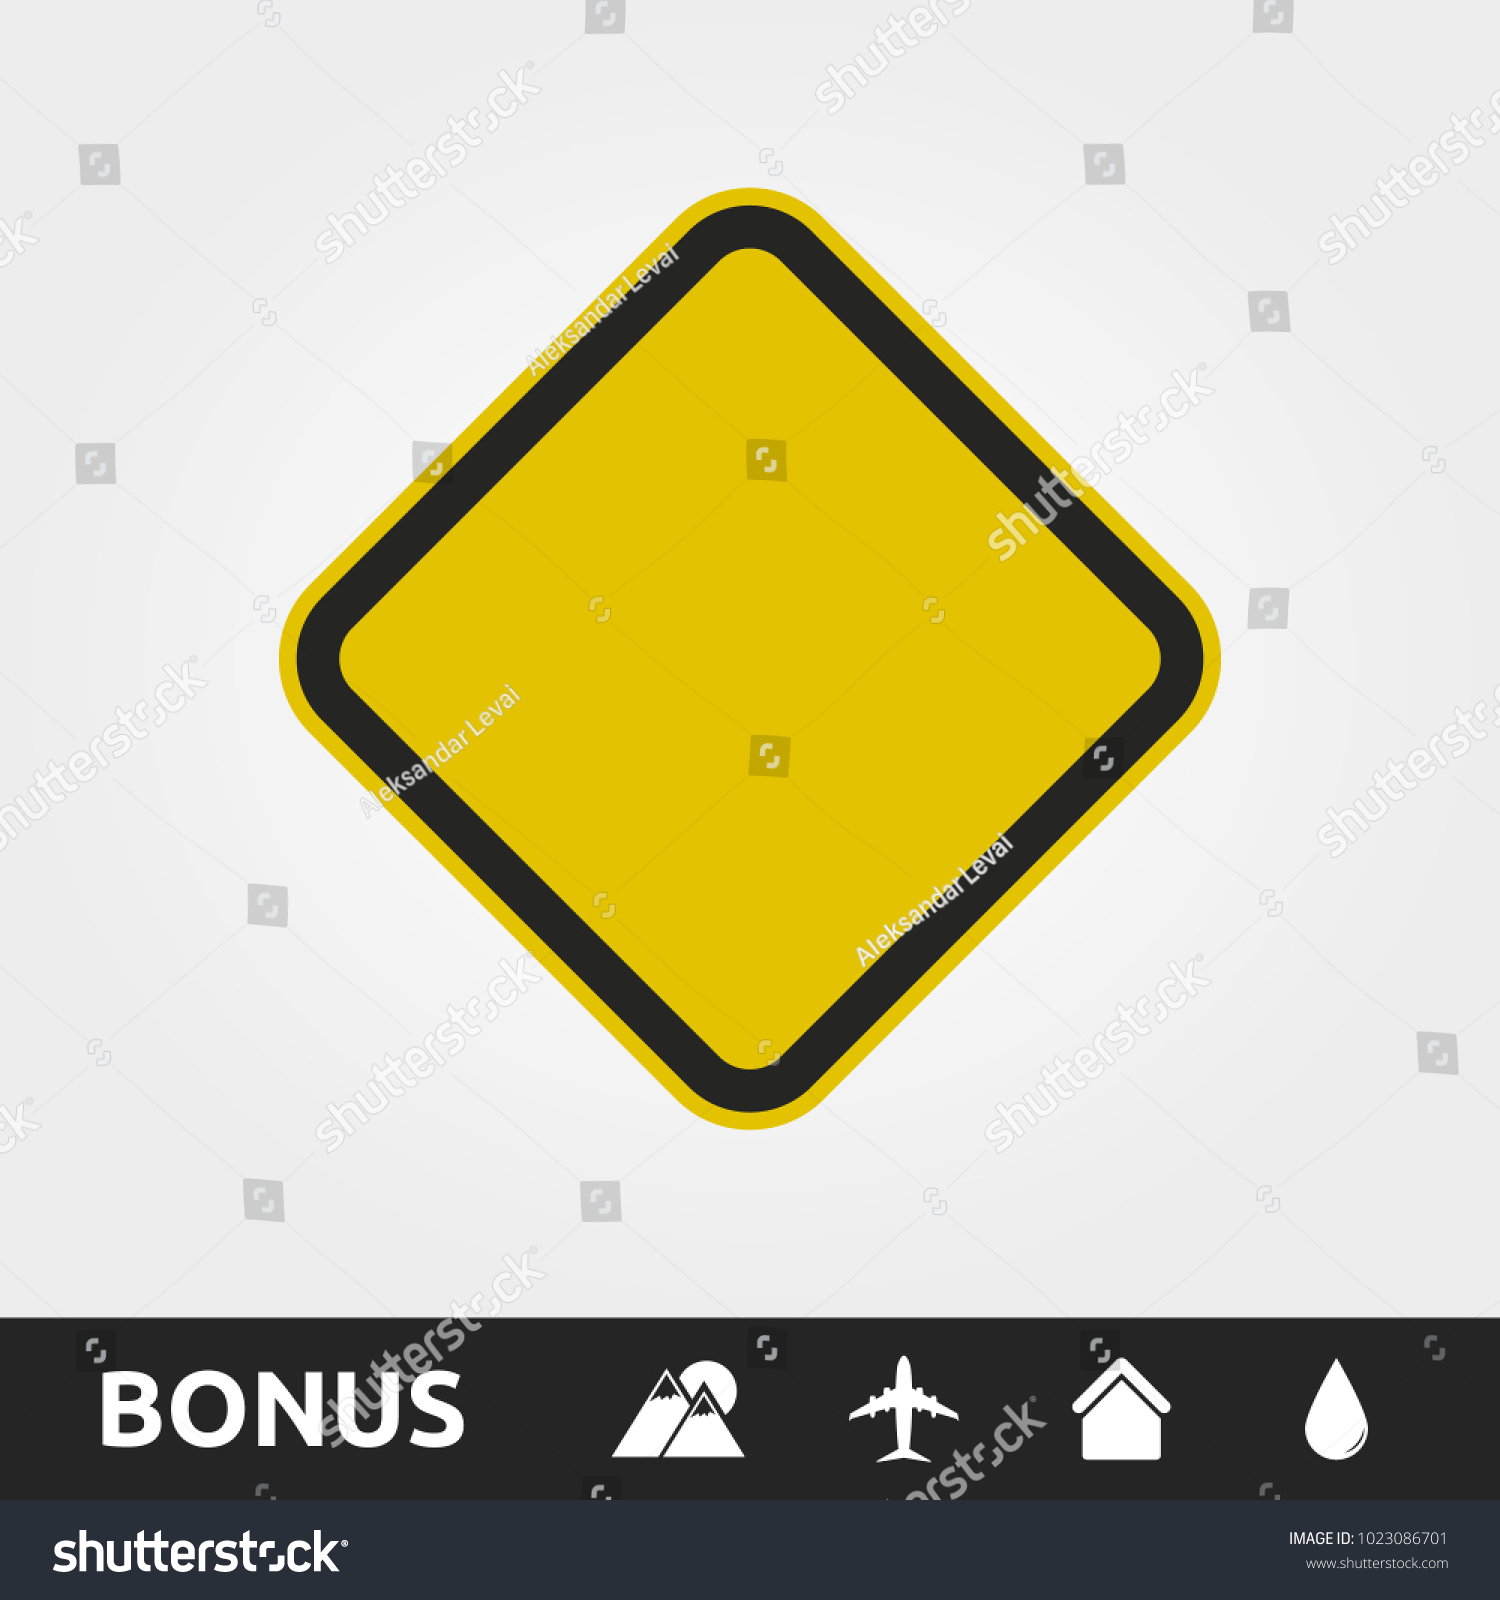 Blank Yellow Caution/Warning Square sign #1023086701